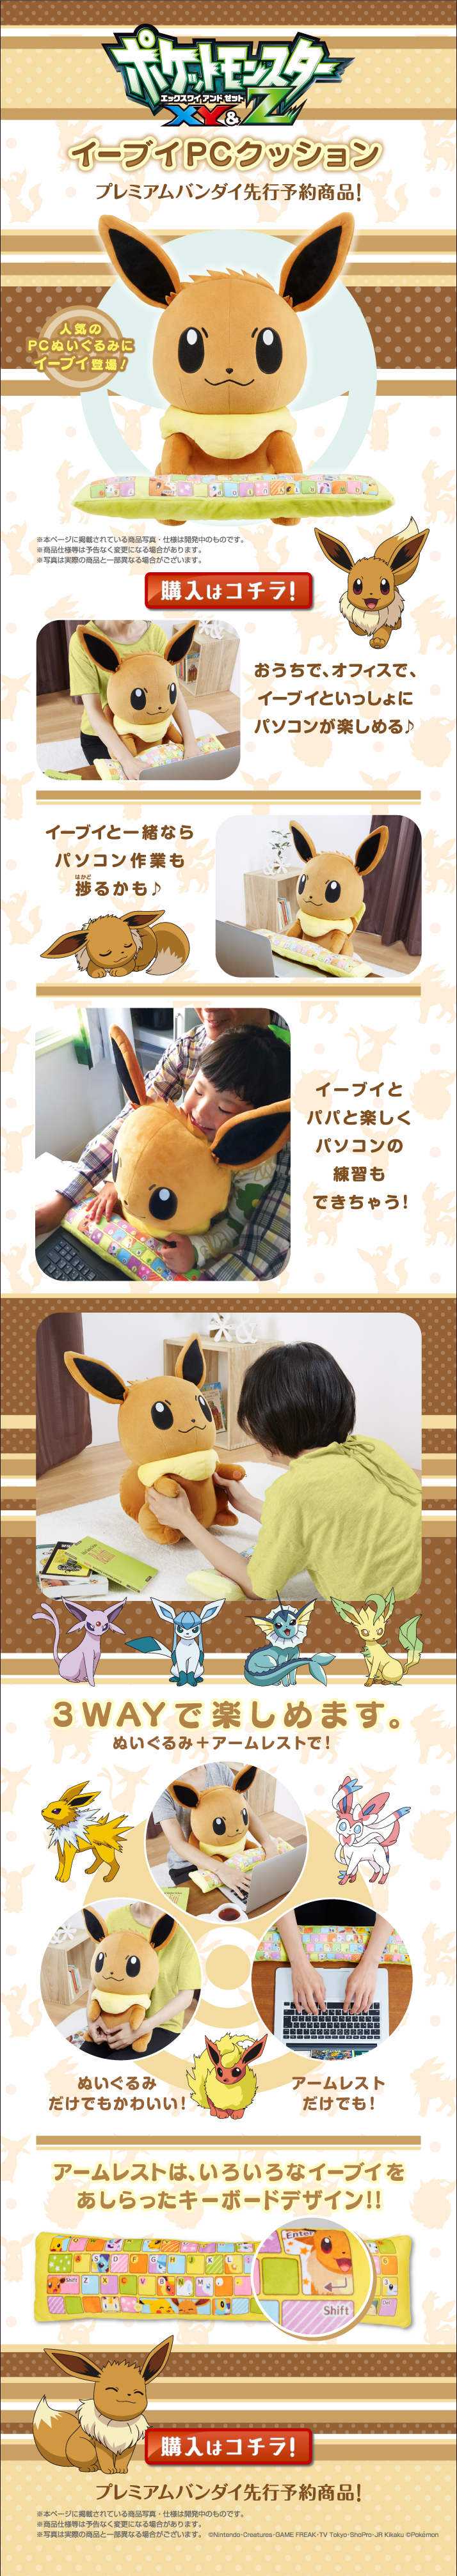 Check Out This Cute Pok�mon Eevee Plush With Keyboard Rest